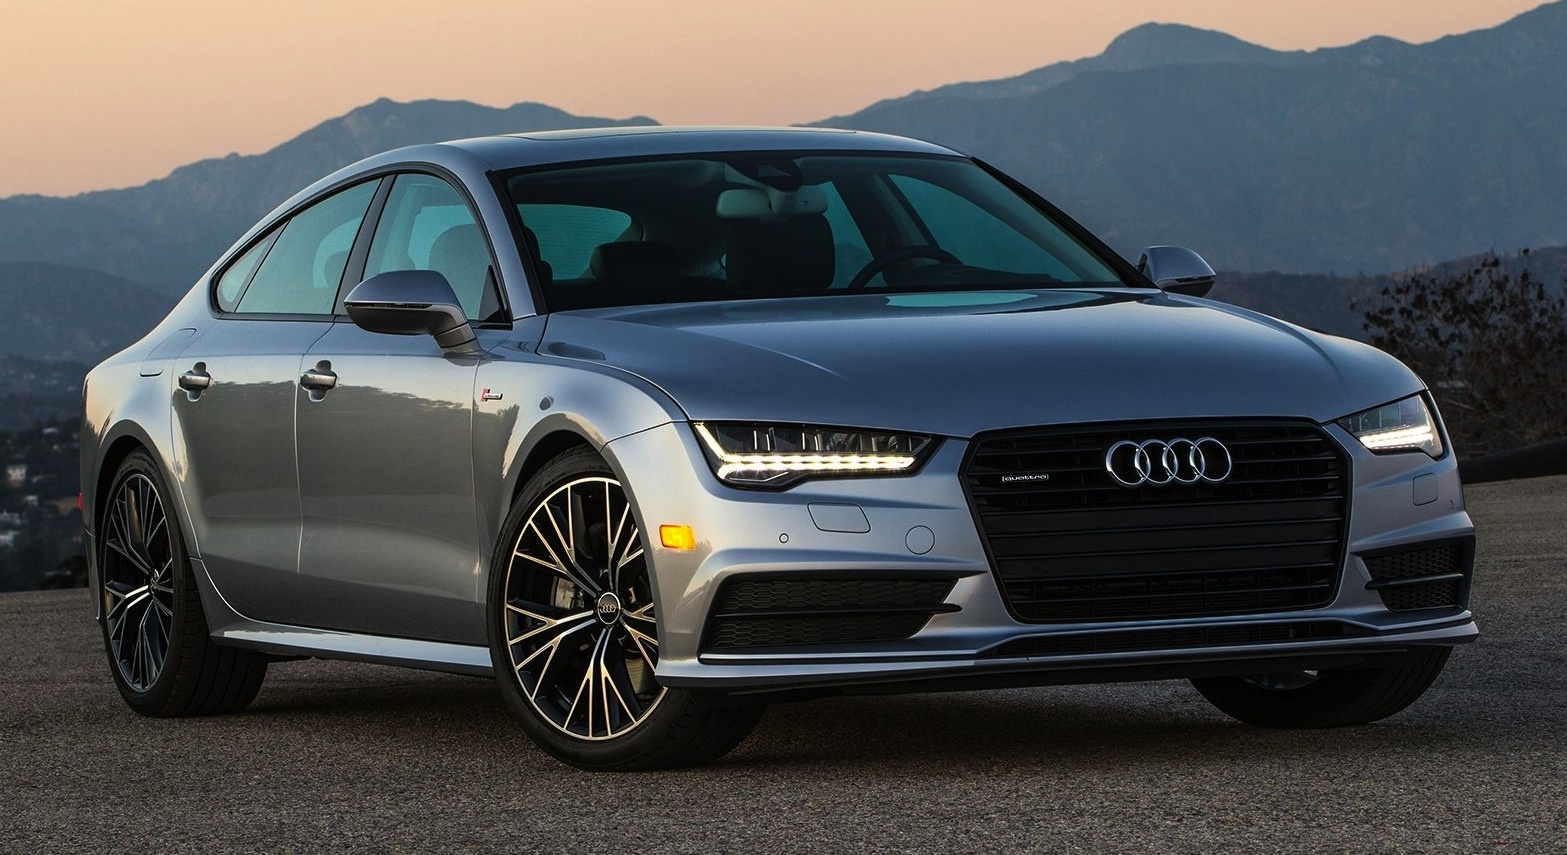 2016 Audi A7 - Review - CarGurus